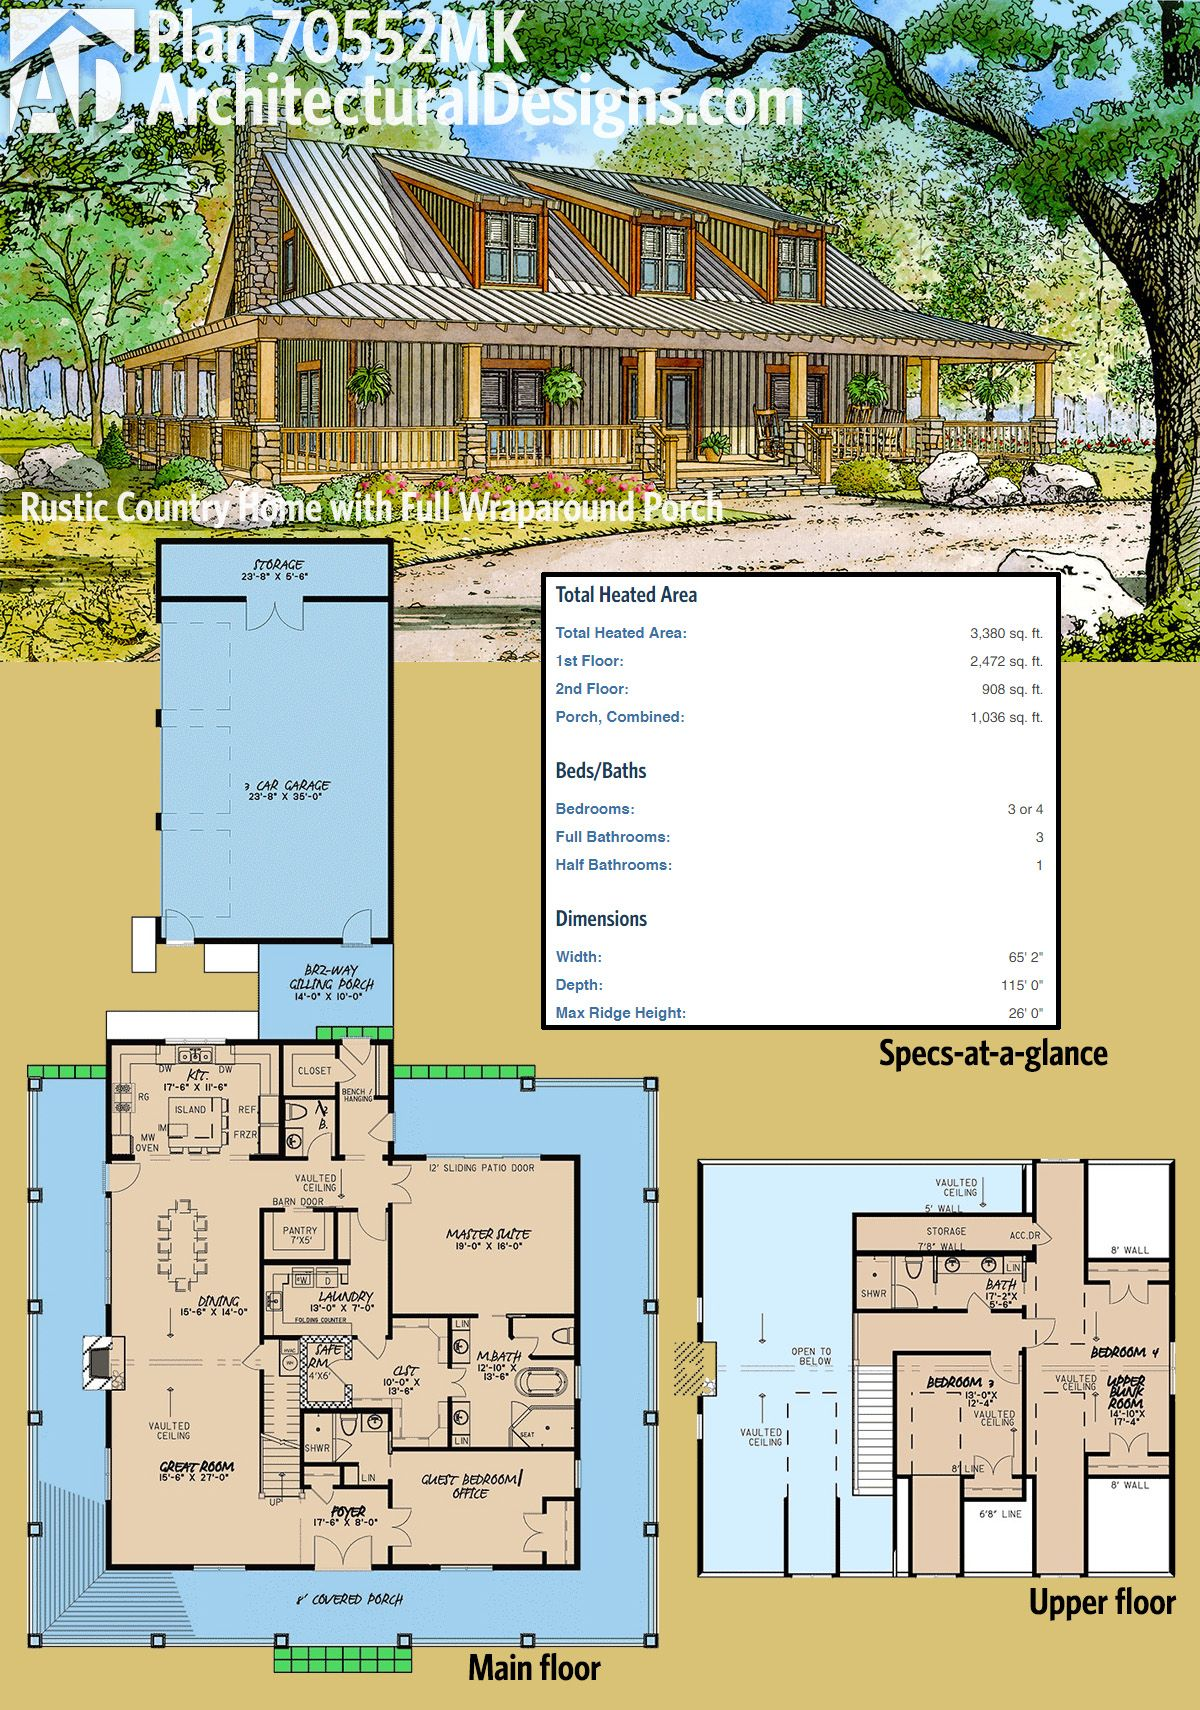 Plan 70552mk rustic country home with wrap around porch Rustic architecture house plans